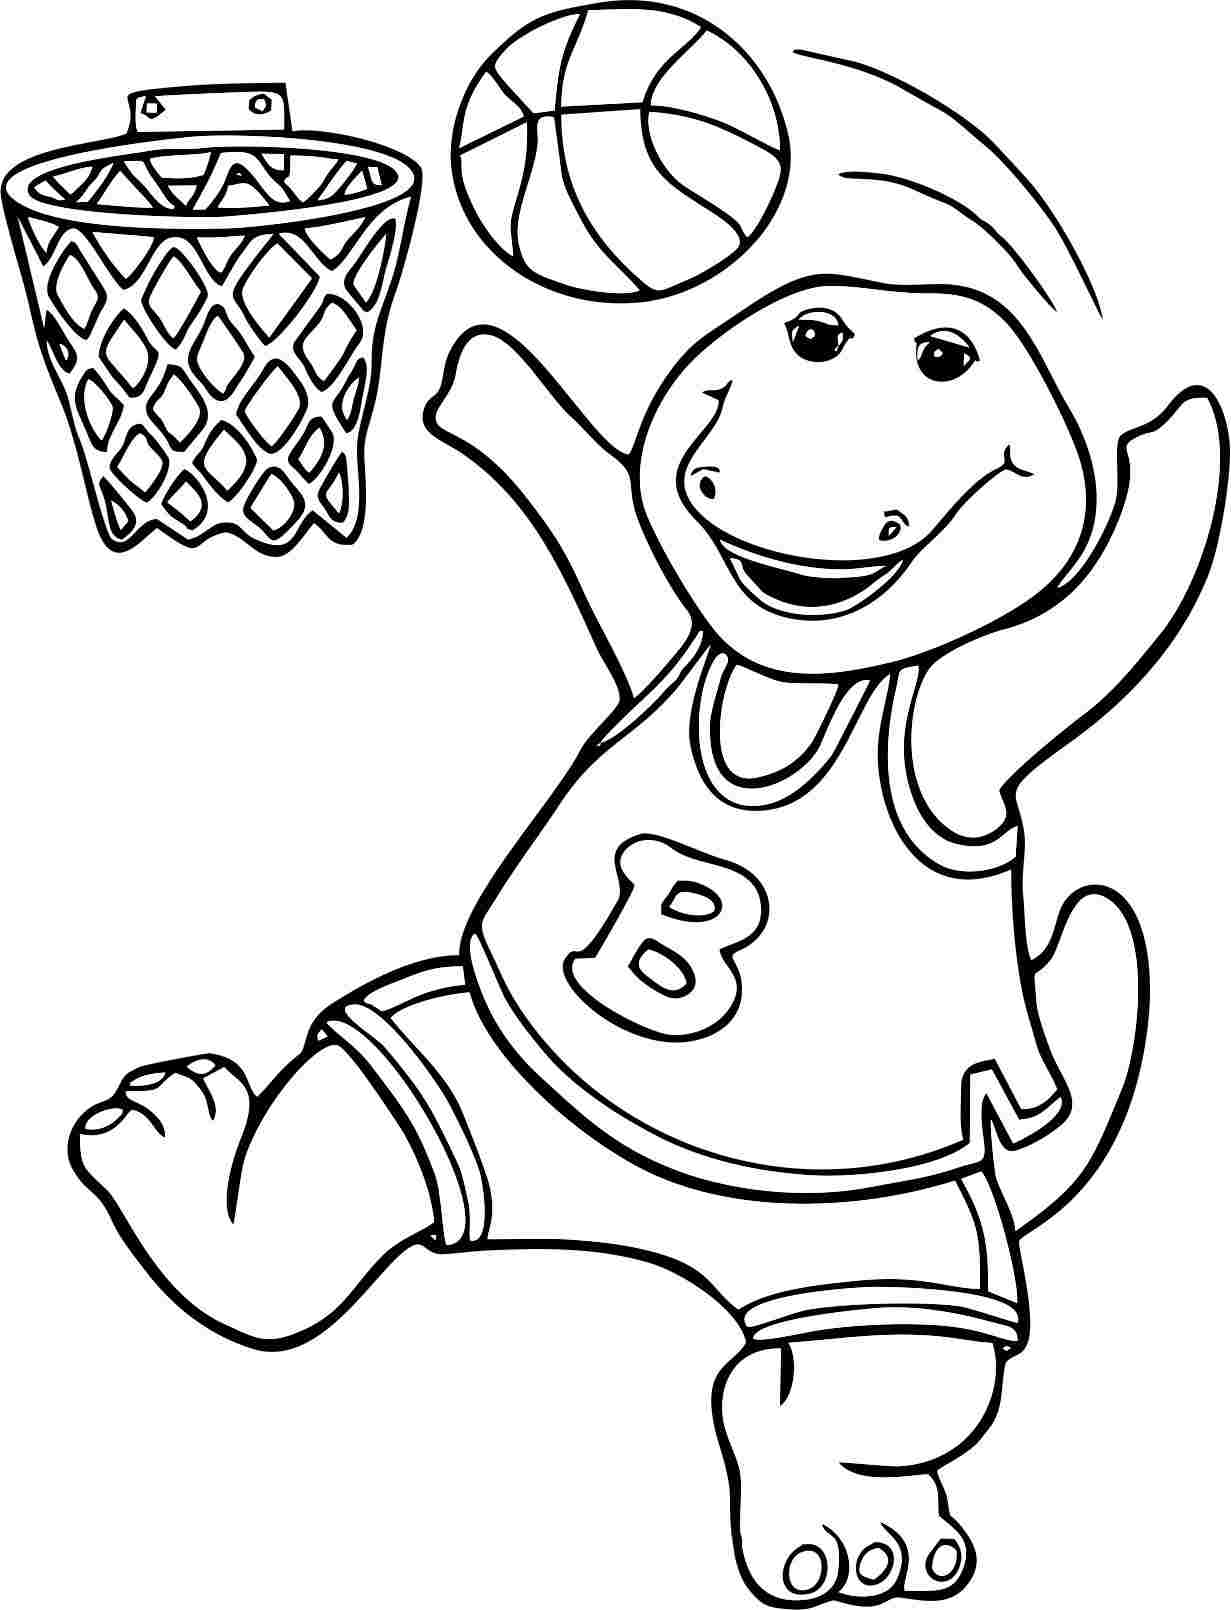 free online coloring pages to print | Story of a friendly dinosaur Barney 20 Barney coloring ...